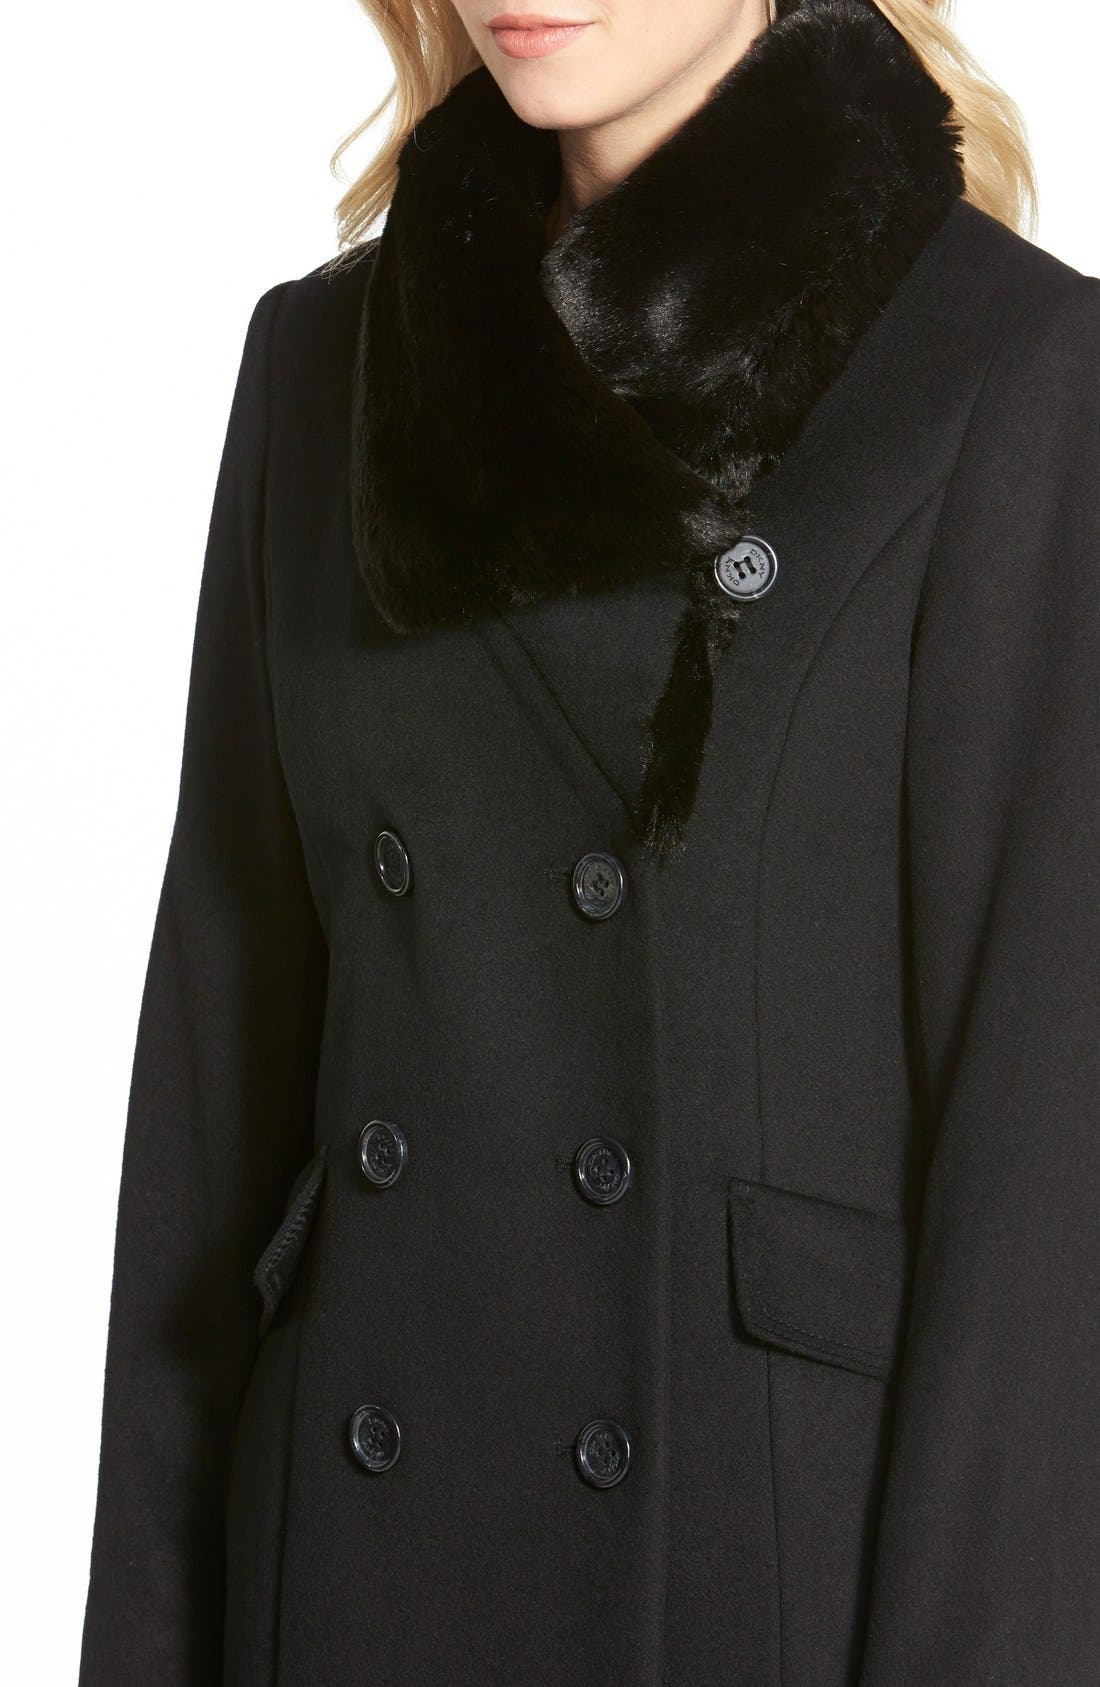 Long Wool Blend Coat with Faux Fur Collar,                             Alternate thumbnail 5, color,                             001